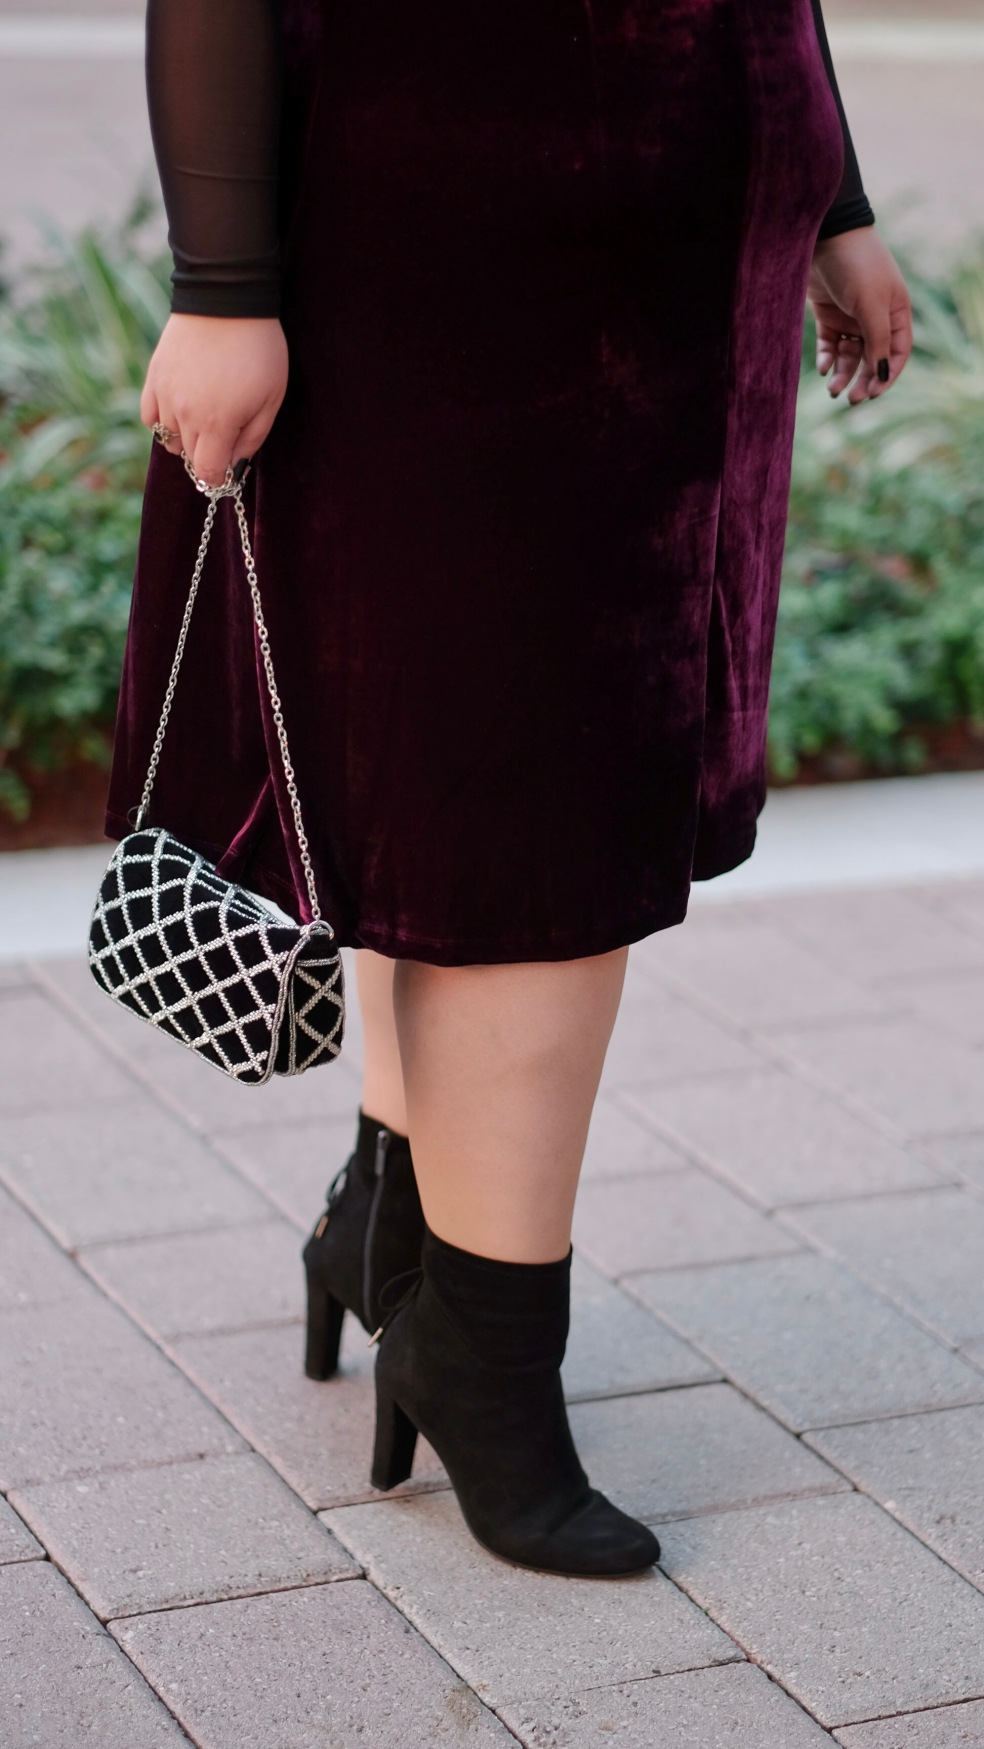 Holiday Party Accessories featuring H&M Faux Suede Embroidery Bag and Sam Edelman Faux Suede Ankle Boots